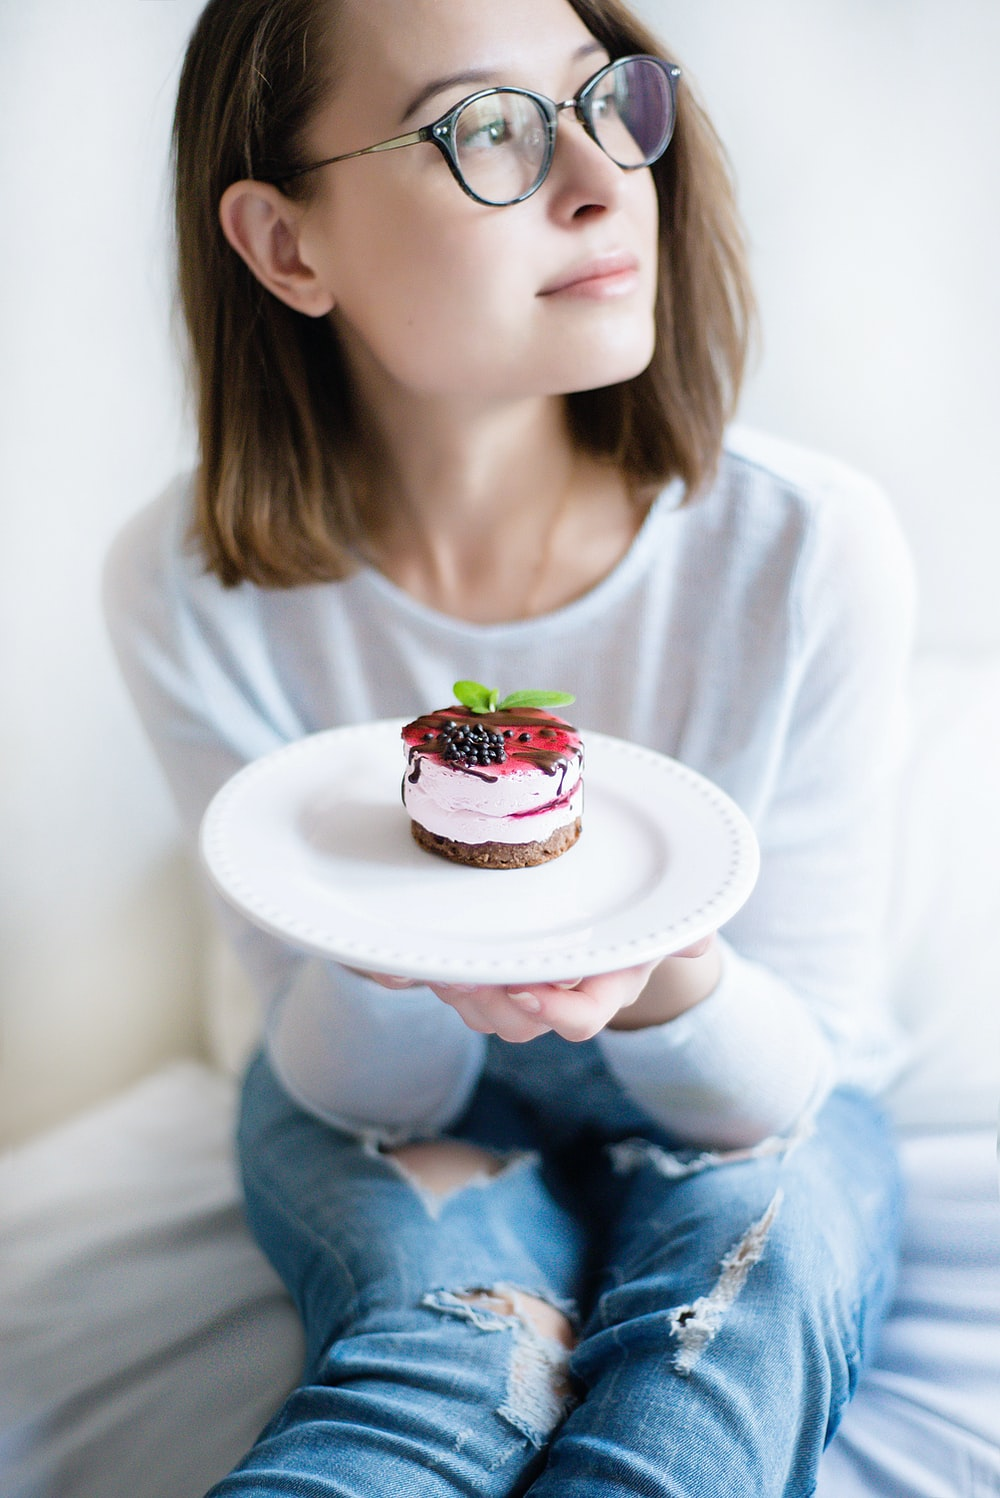 woman wearing white shirt holding plate of cake